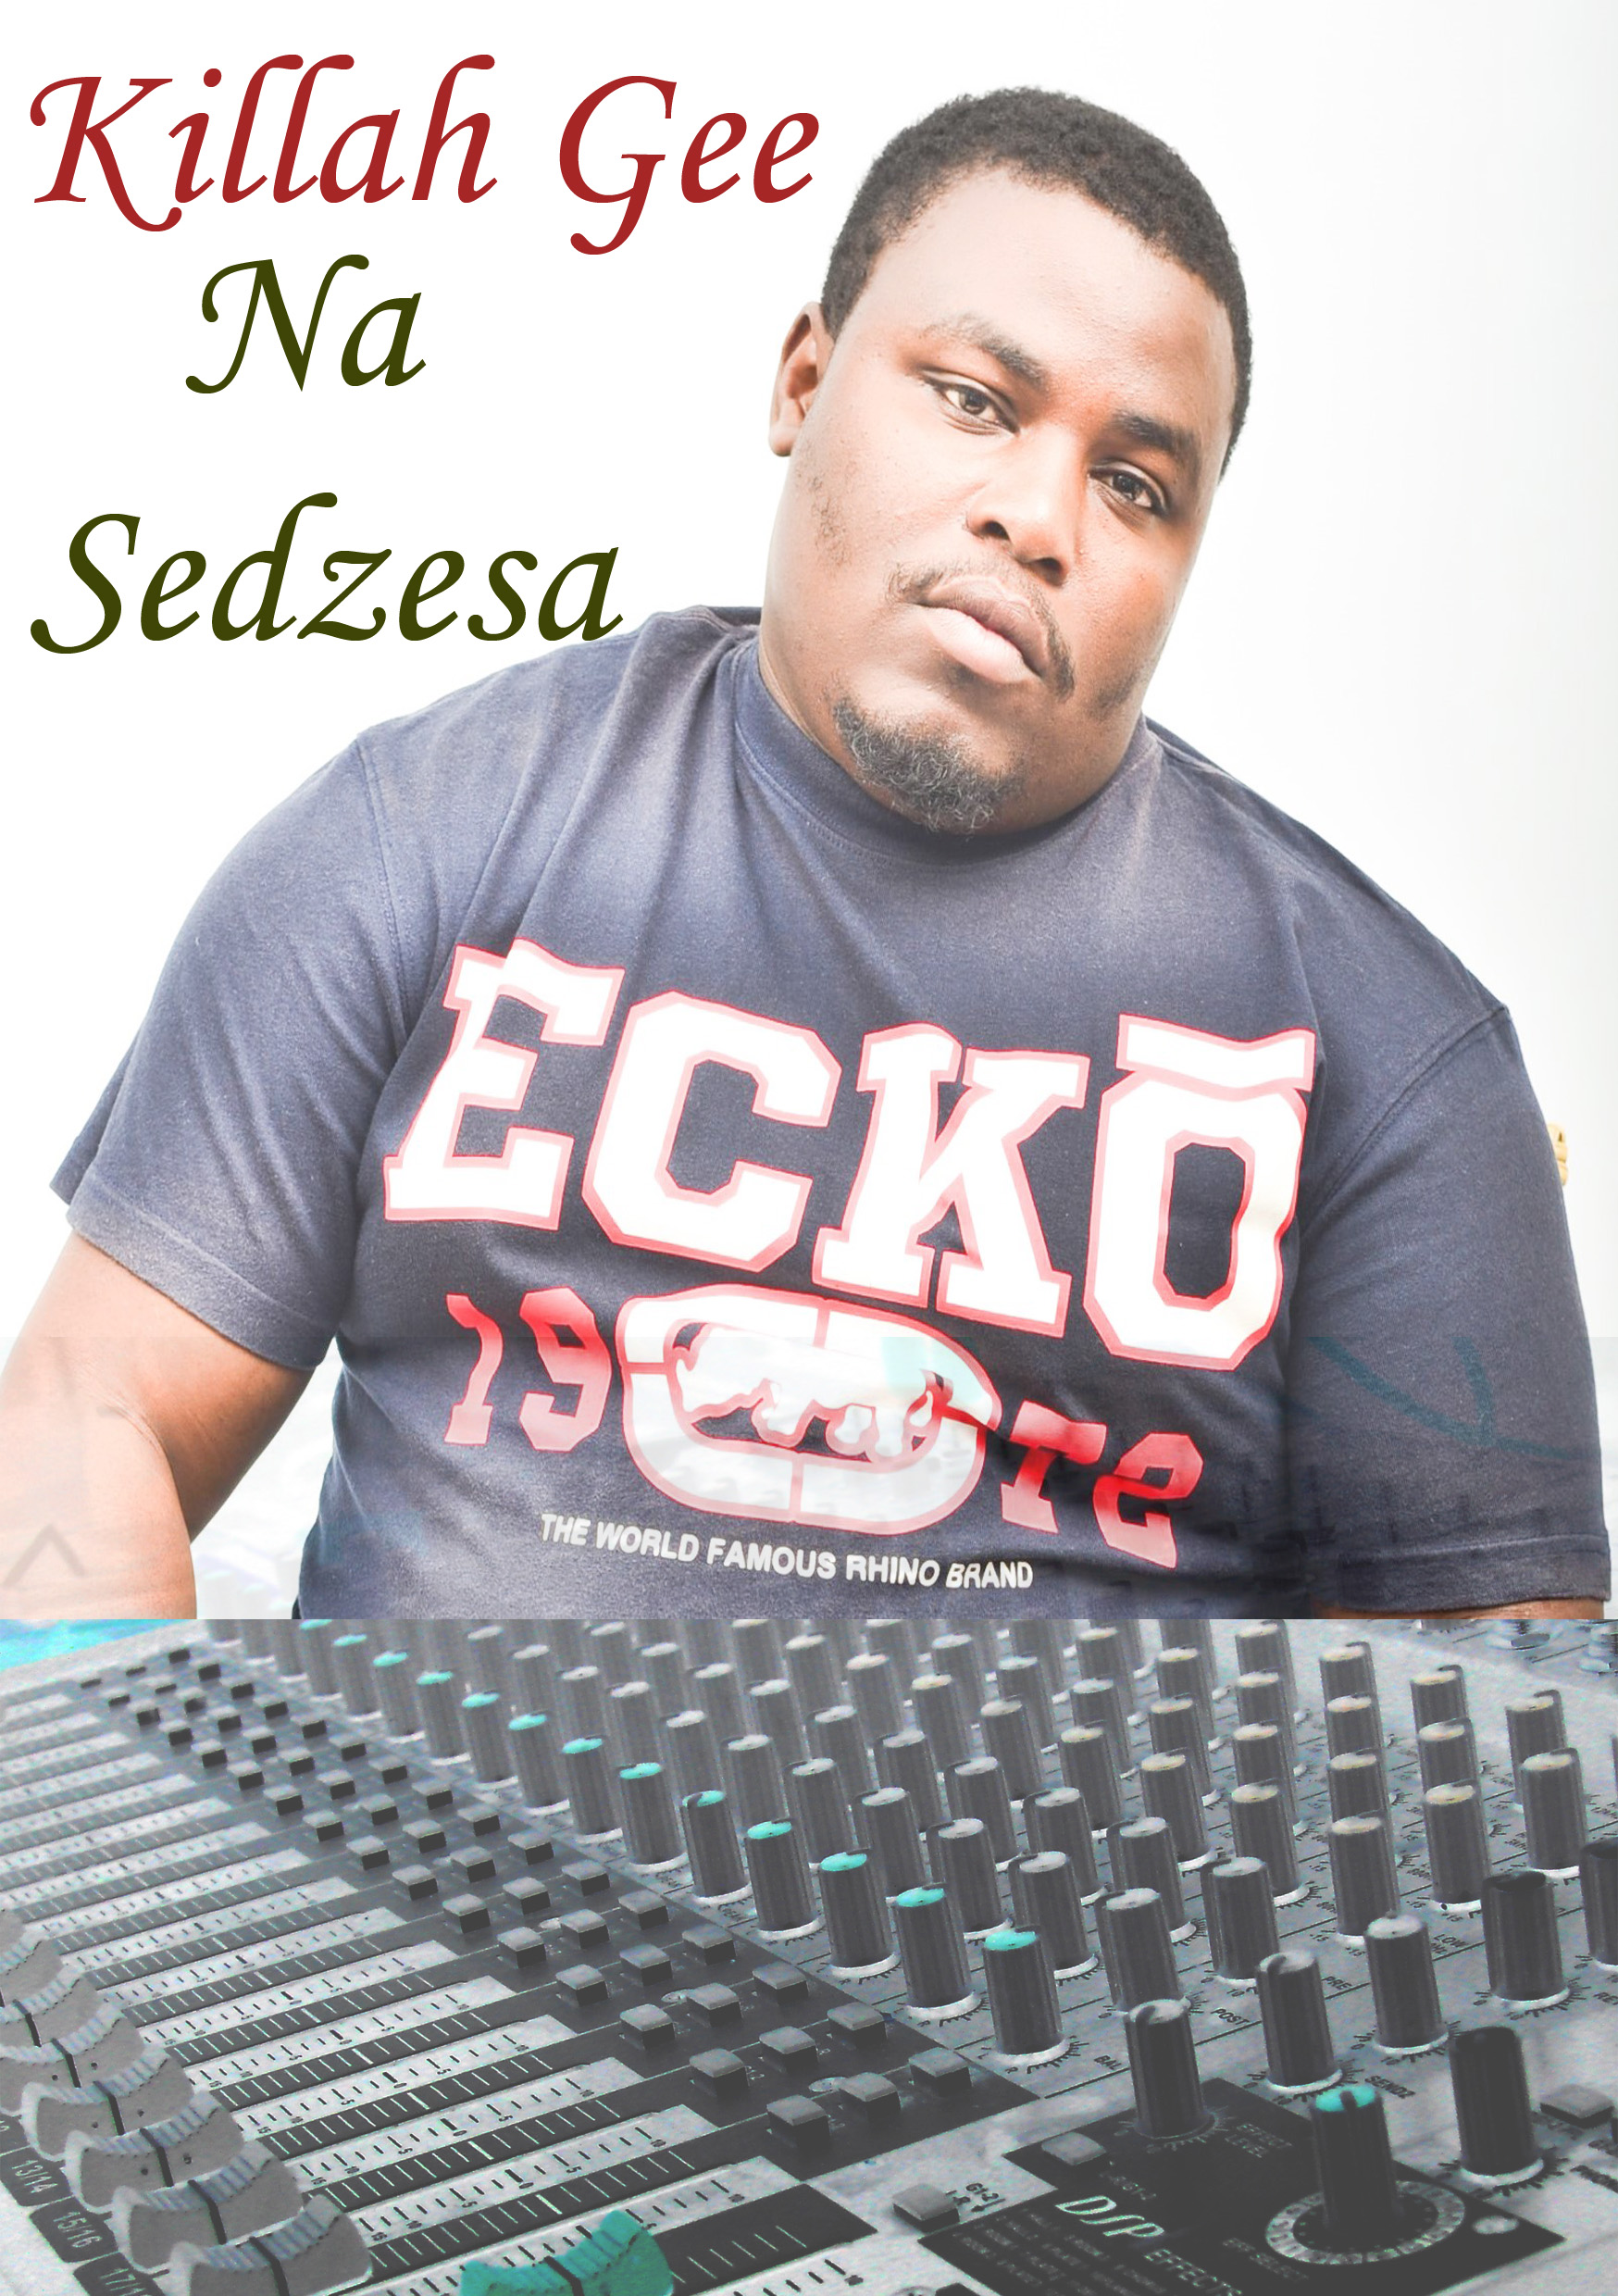 Coming up - You are about to get all Mulambo Media music here